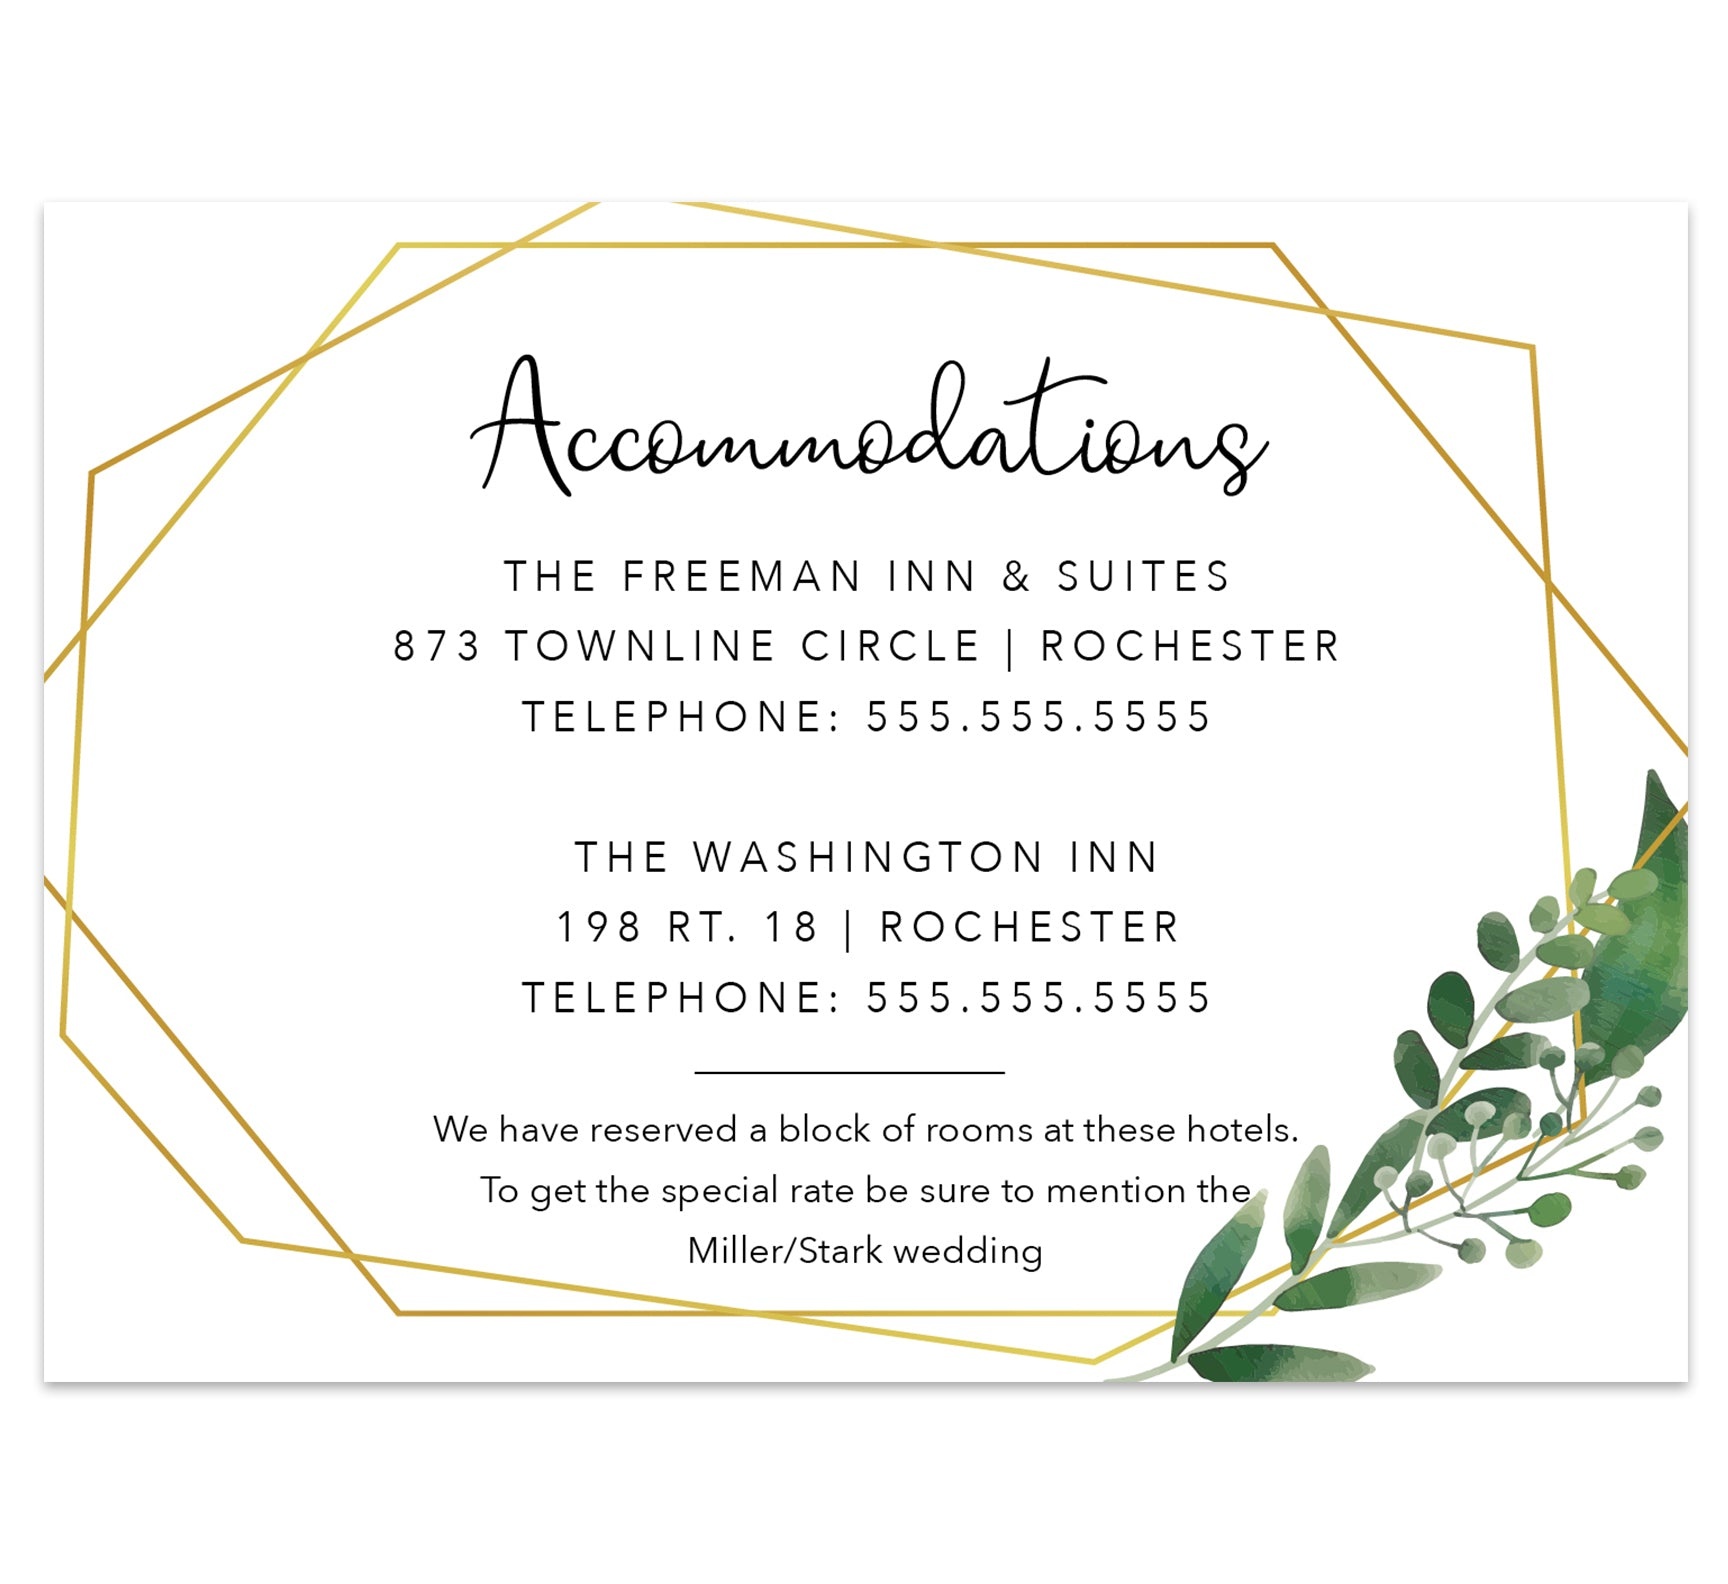 Watercolor Greenery wedding accommodations/details card; white background with gold frame and watercolor greenery